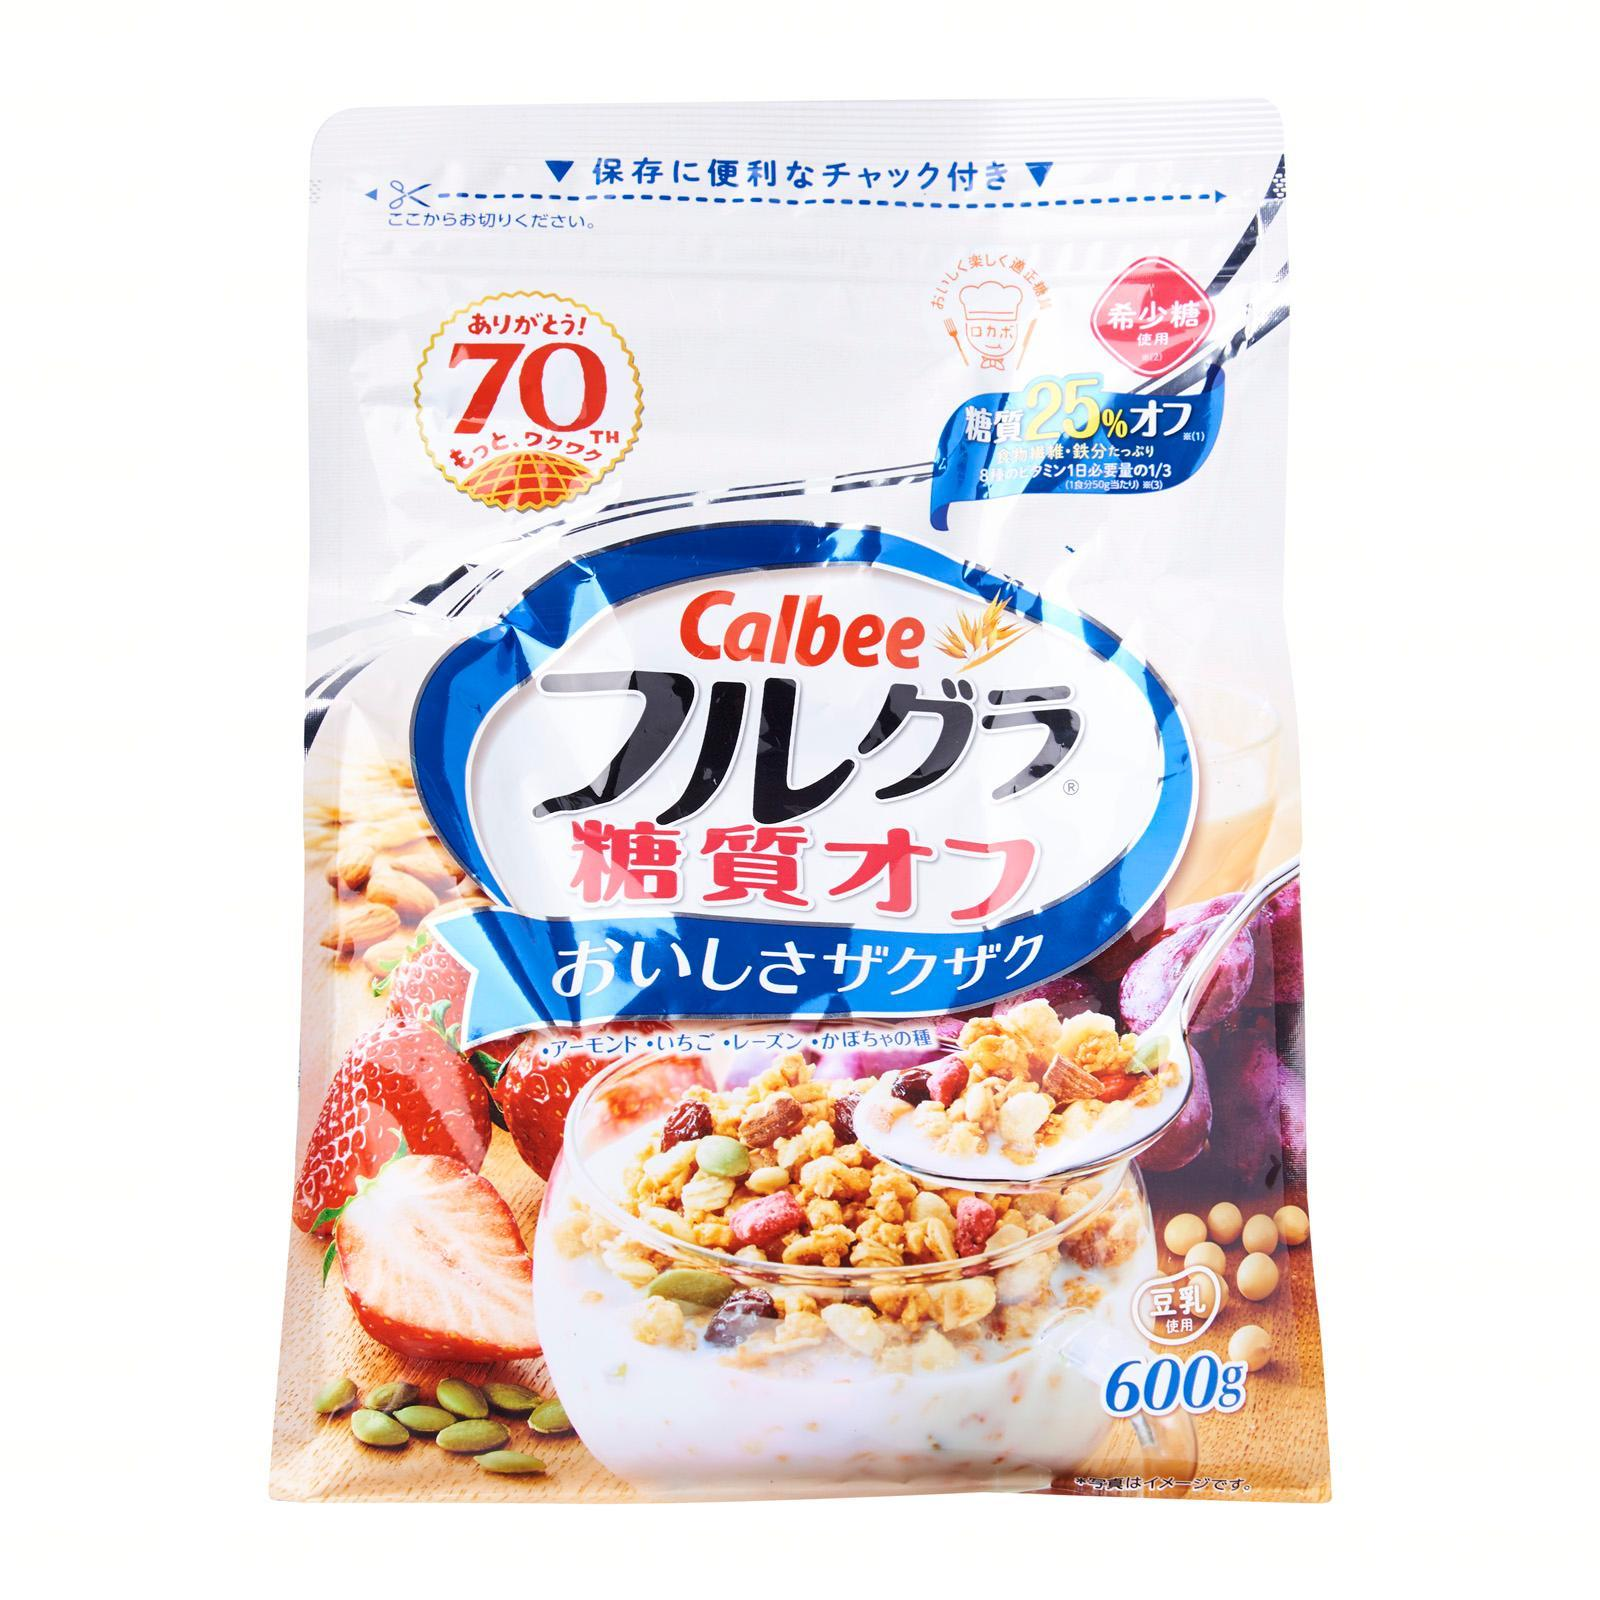 Calbee 25% Reduced Sugar Special Breakfast Fruits Granola